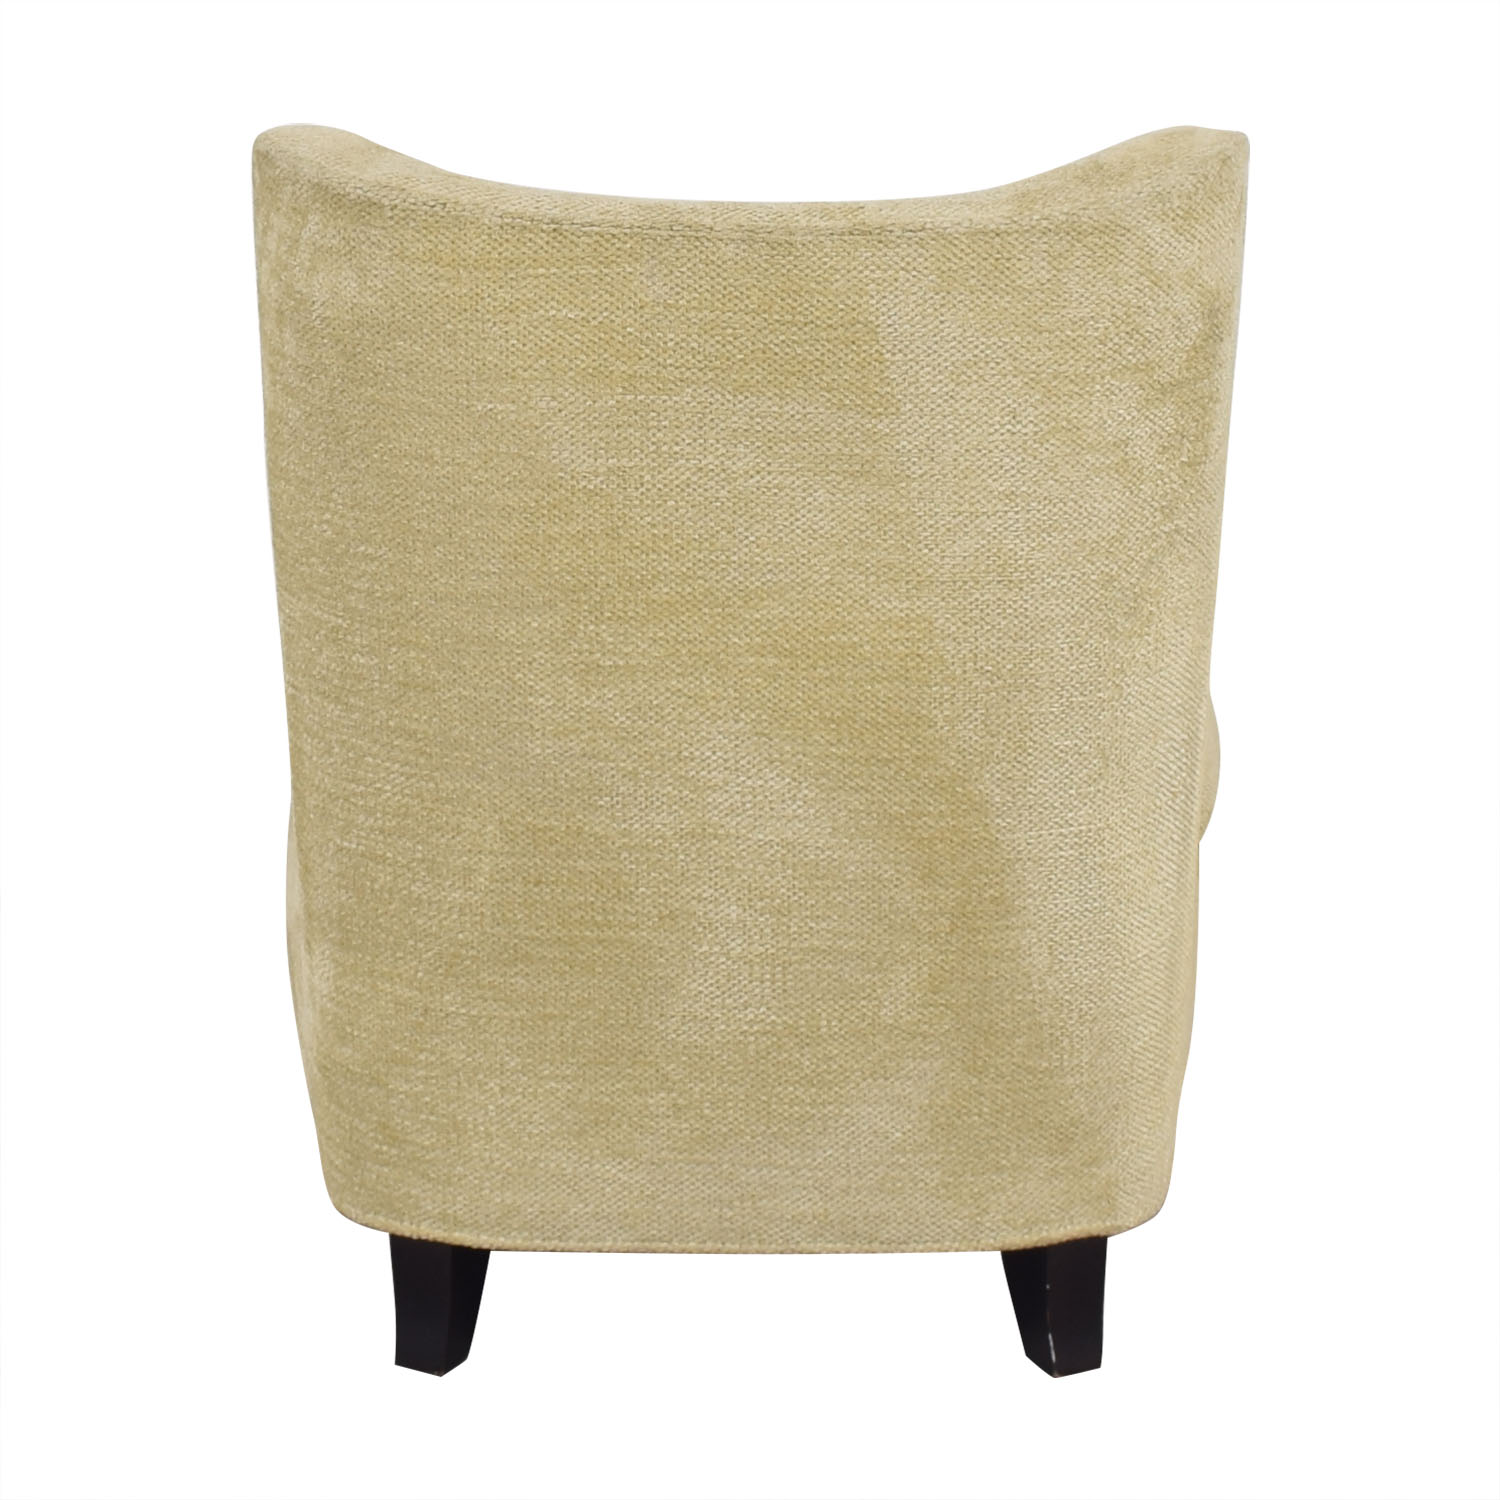 buy Baker Furniture Barbara Barry Slipper Chair Baker Furniture Accent Chairs